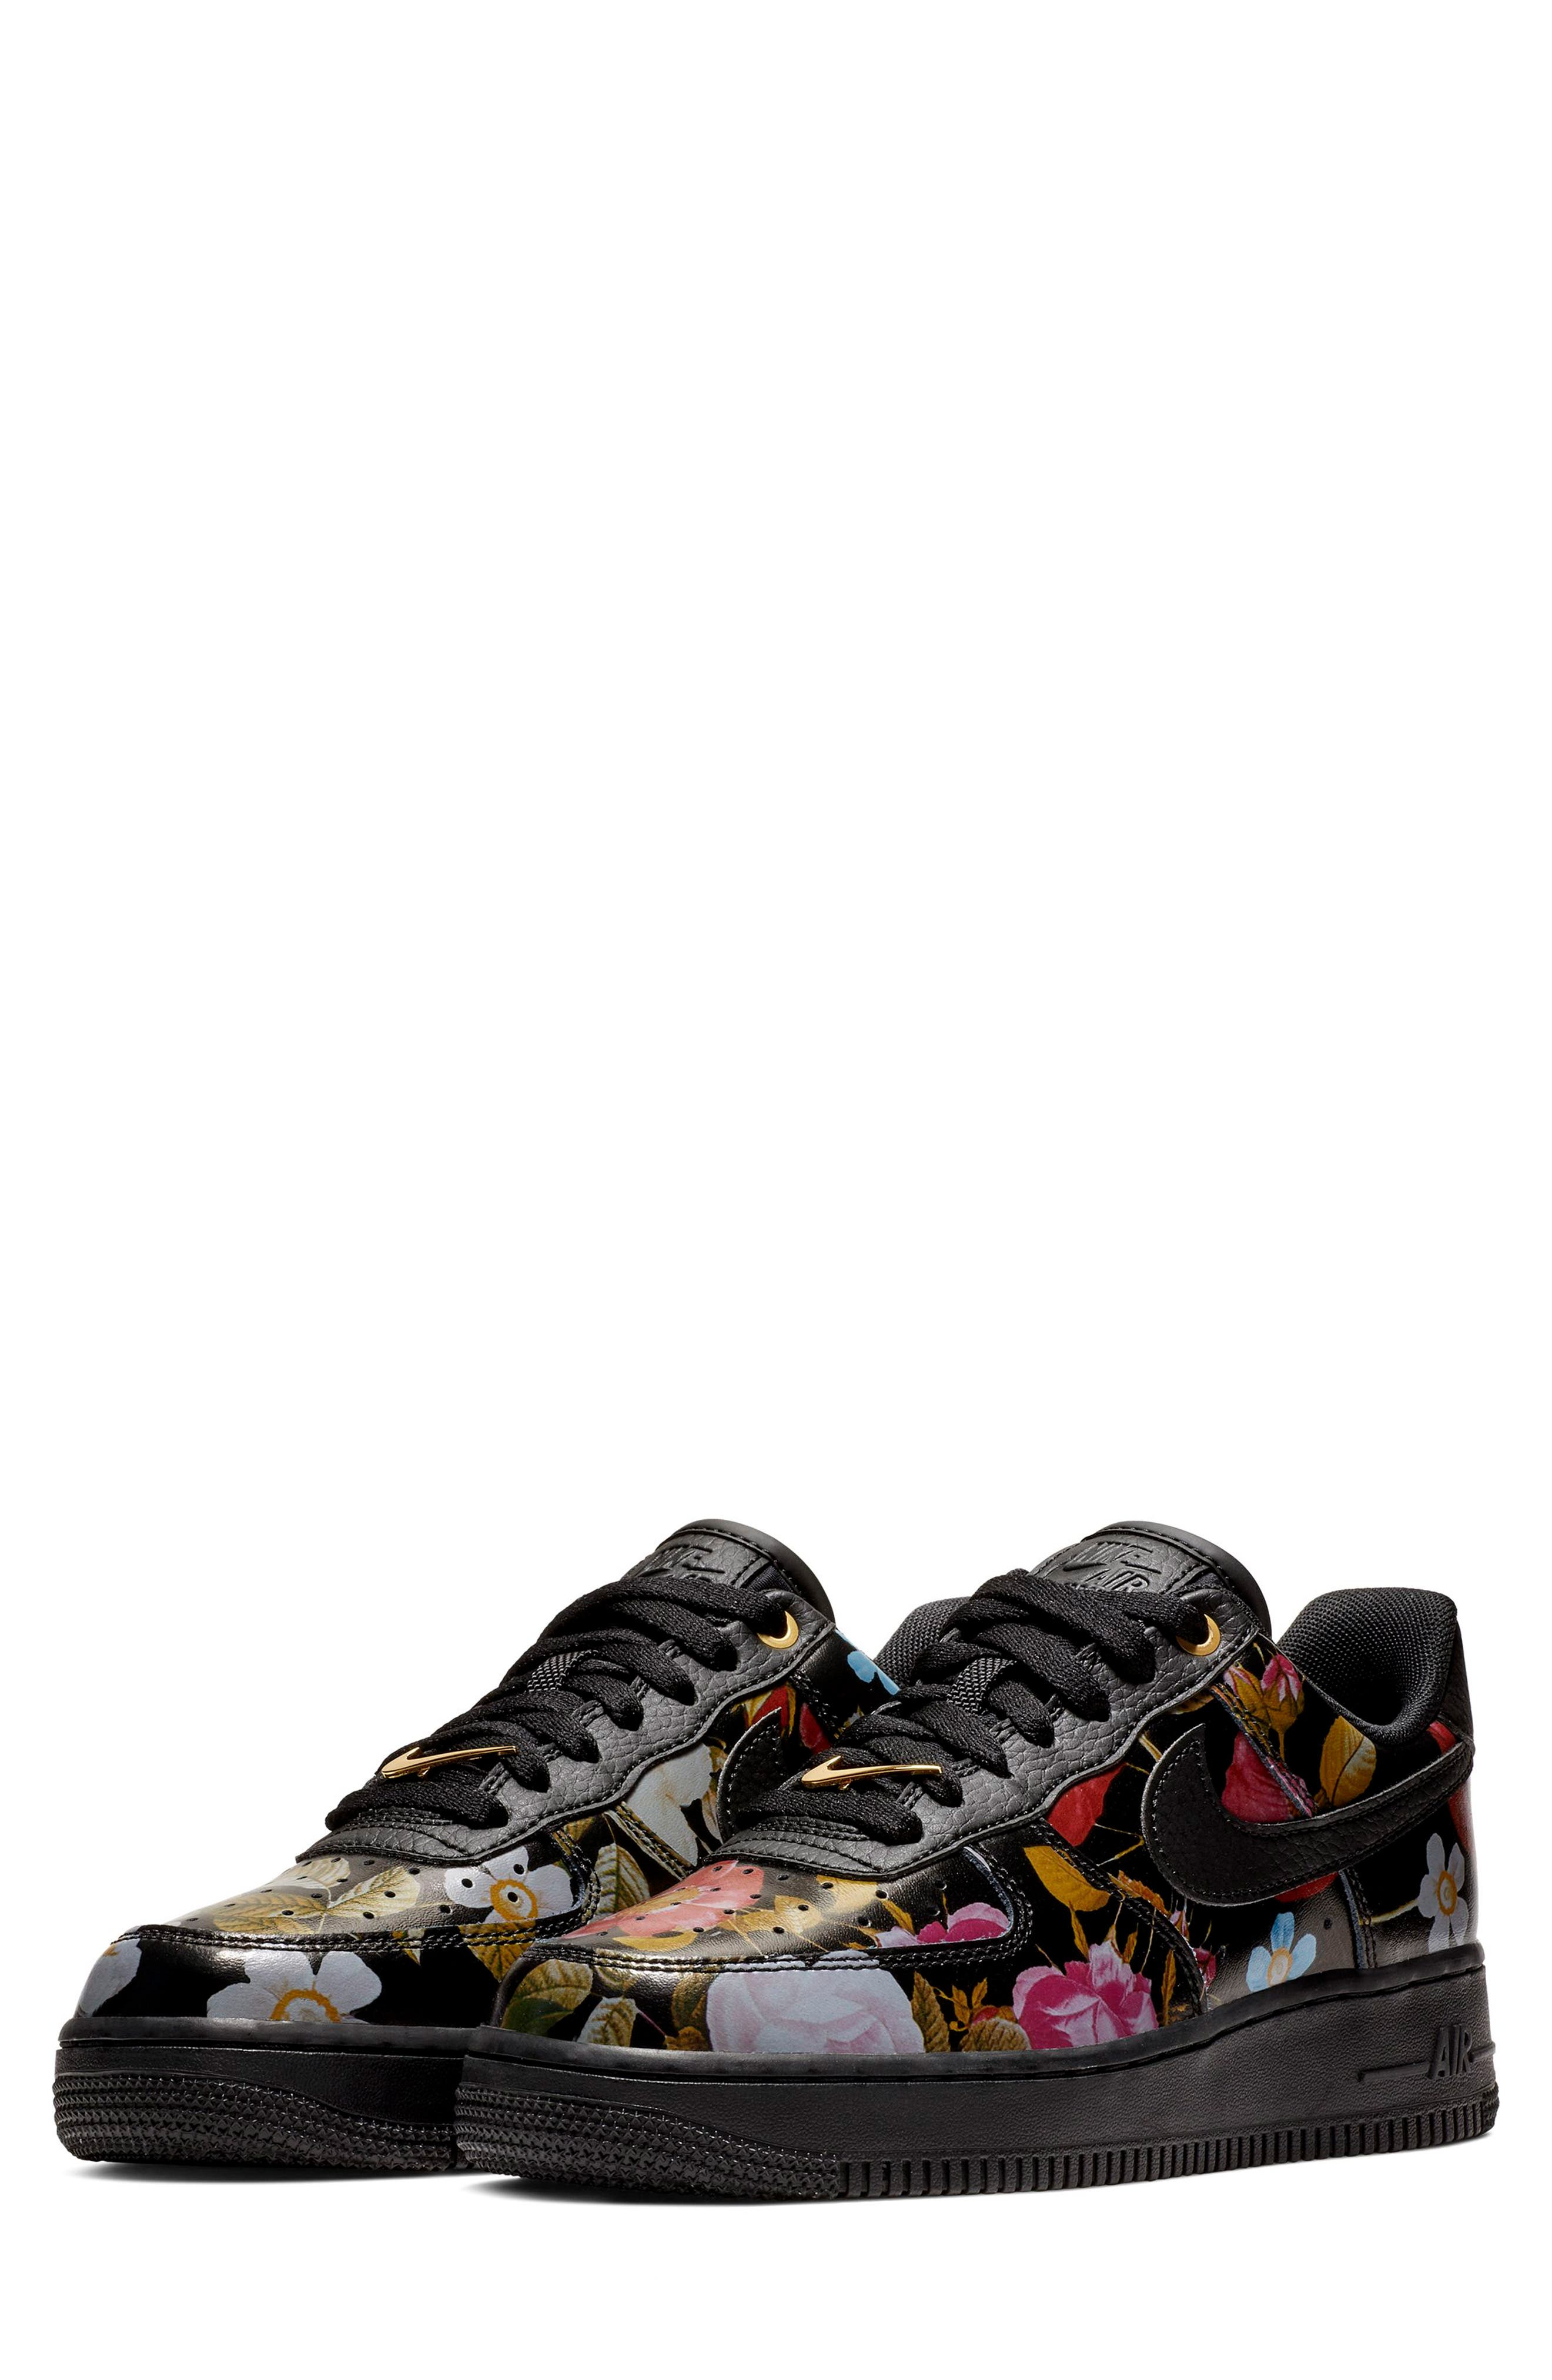 NIKE, Air Force 1 '07 LXX Sneaker, Main thumbnail 1, color, BLACK/ BLACK/ METALLIC GOLD